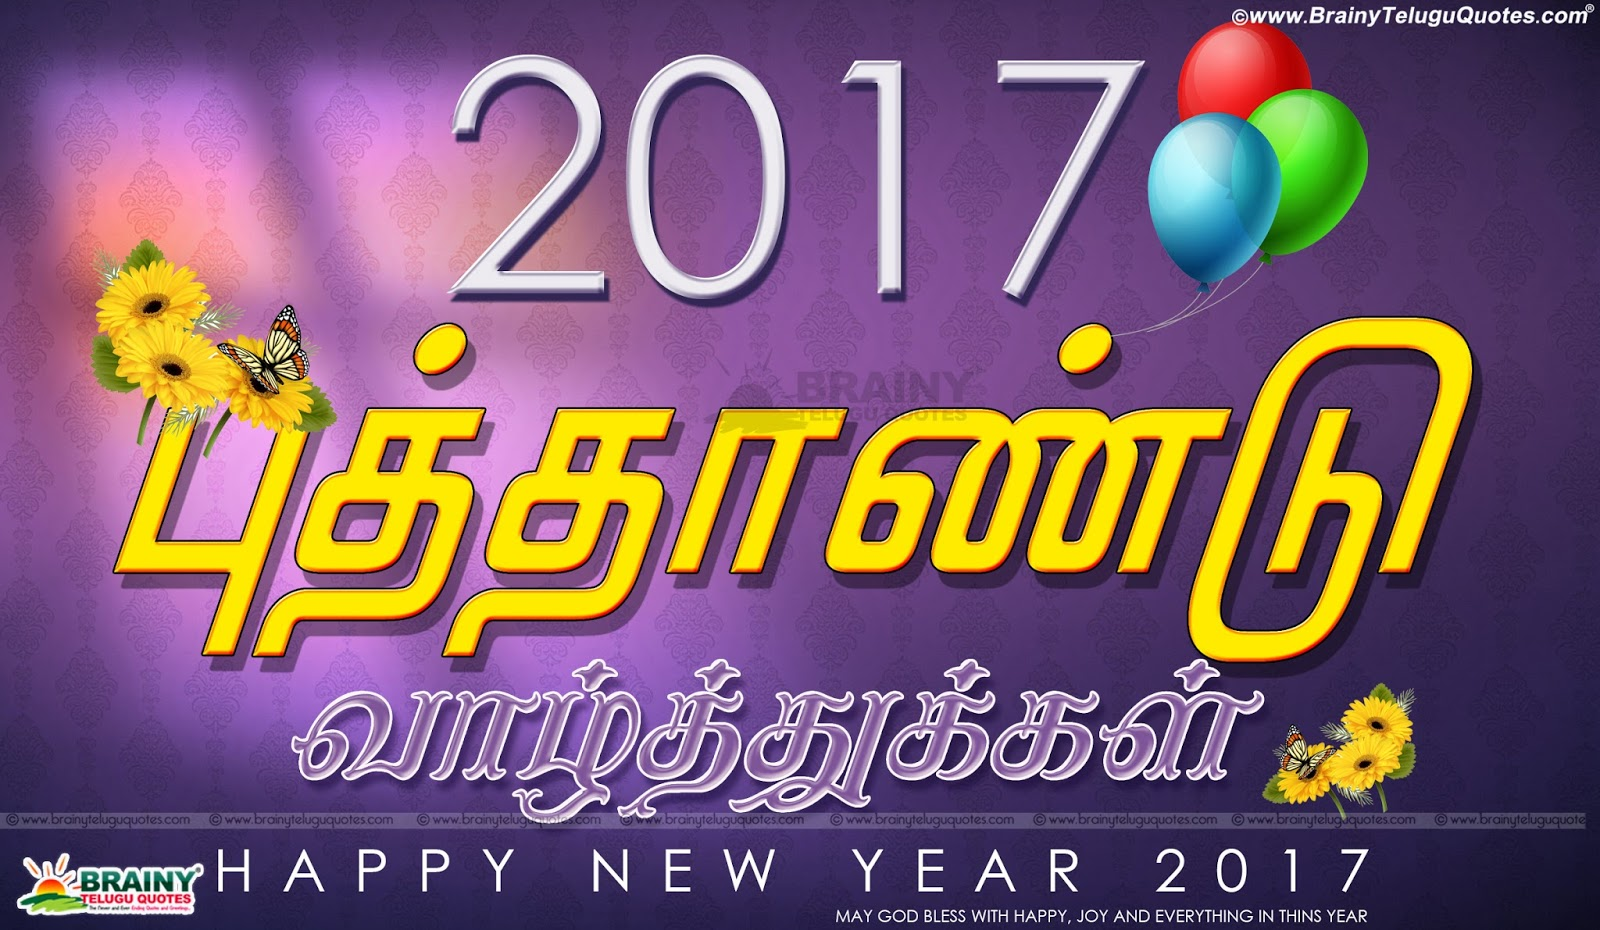 Tamil 2017 new year quotes greetings with vector wallpapers vector tamil new year greetings hd wallpapers new year 2017 tamil wallpapers tamil new year in tamil tamil new year greetings for free download kristyandbryce Image collections